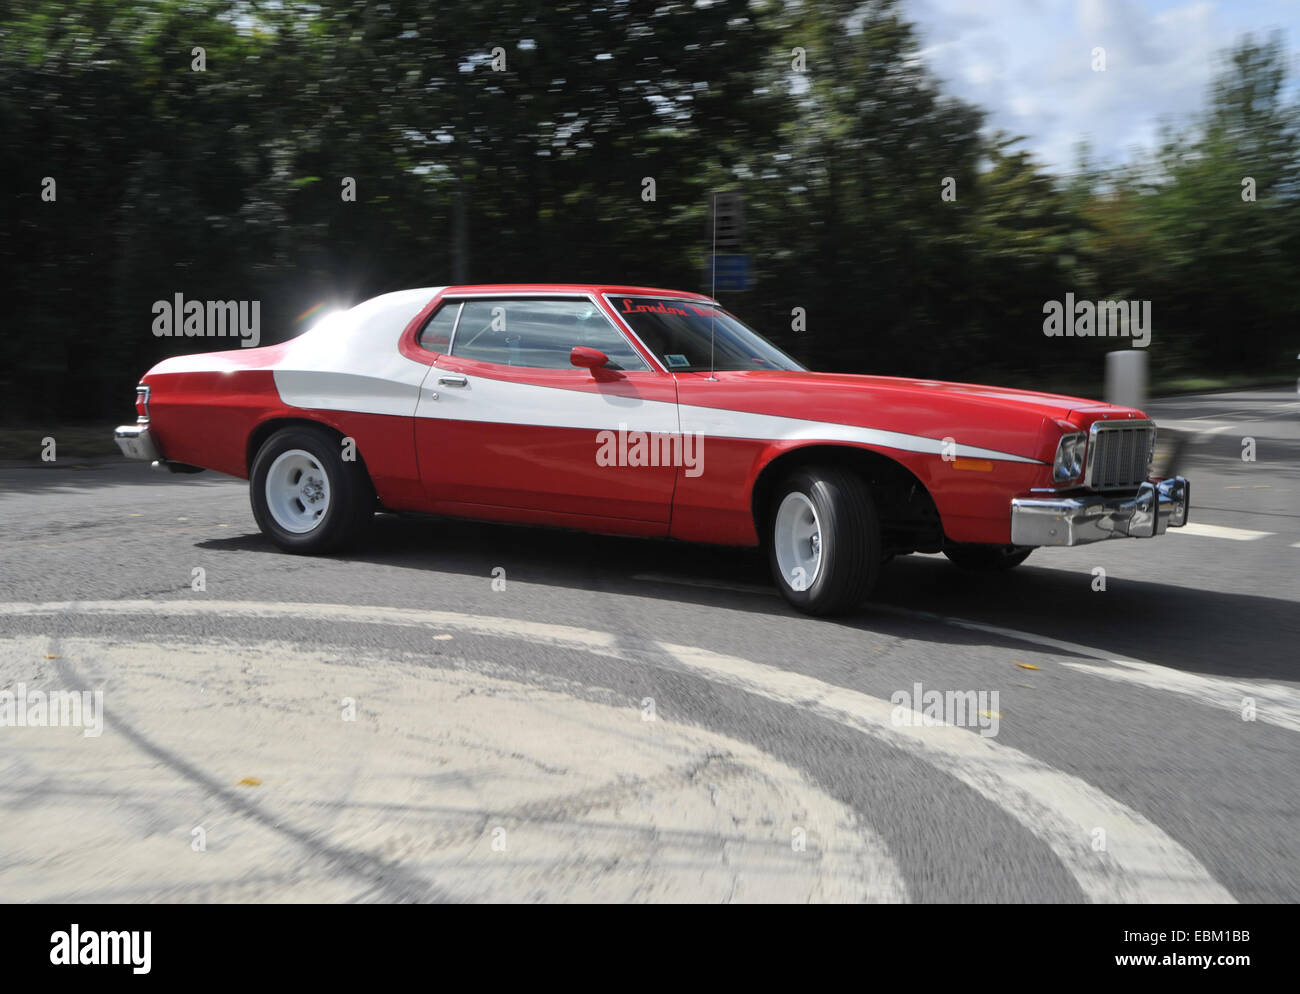 ford gran torino starsky and hutch replica car stockfoto. Black Bedroom Furniture Sets. Home Design Ideas